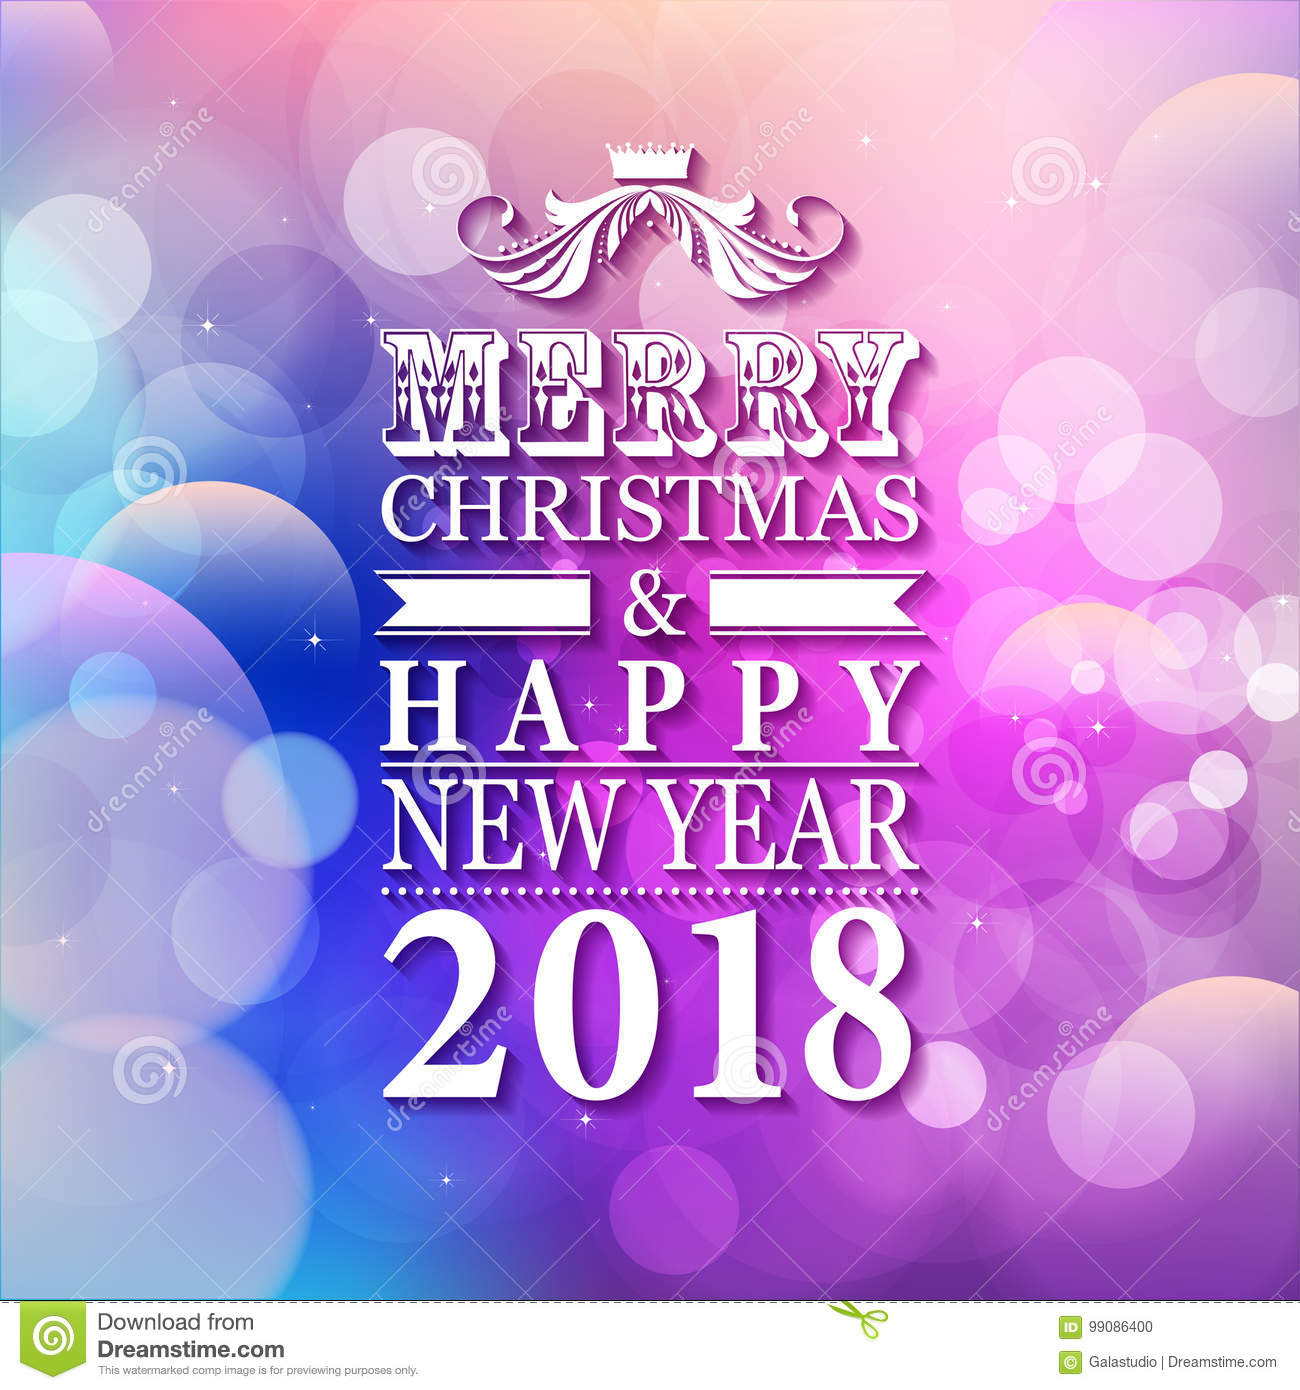 2018 merry christmas and happy new year card or background with